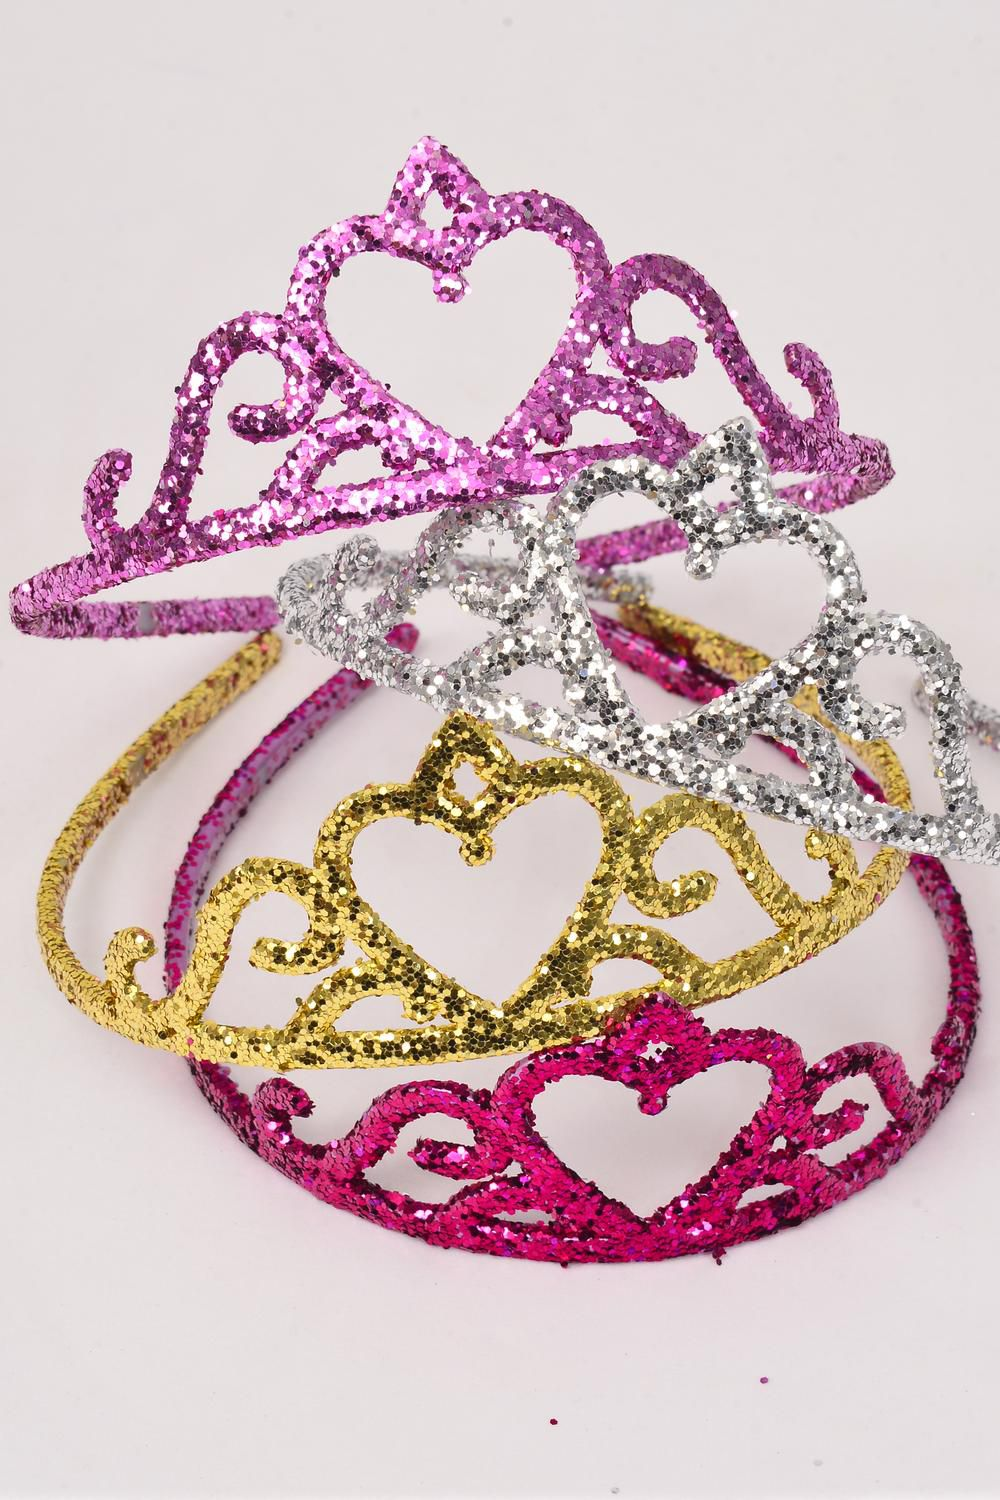 "Headband Tiara Acrylic Glitter Color Asst/DZ Tiara Size-5""x 2"" Wide,3 of each Color Asst,Hang Tag & Individual Opp Bag & UPC Code"